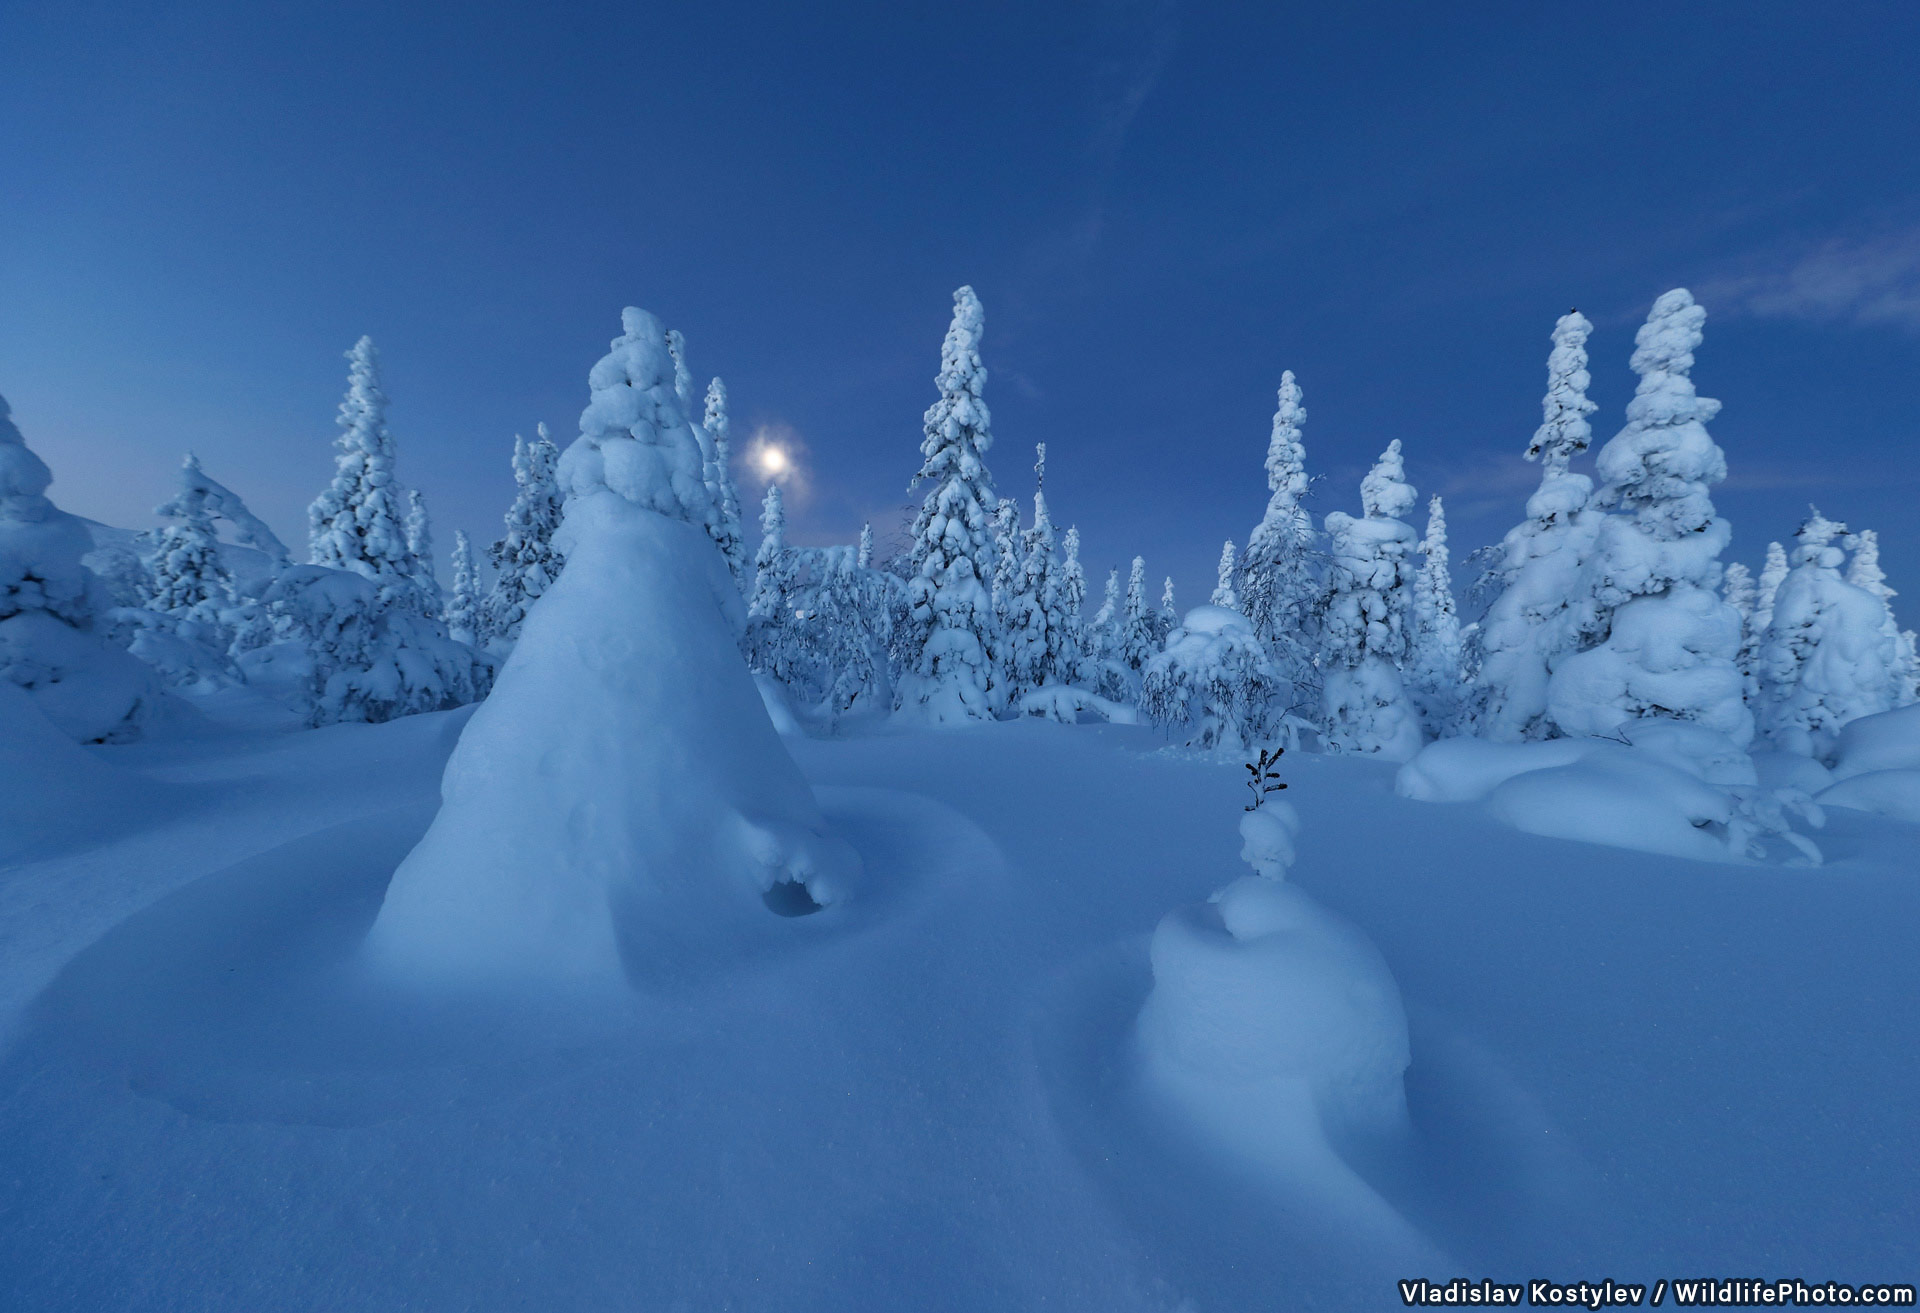 The Winter Forest, © Vladislav Kostylev, Highly Commended, Habitats & Landscapes Photo Contest